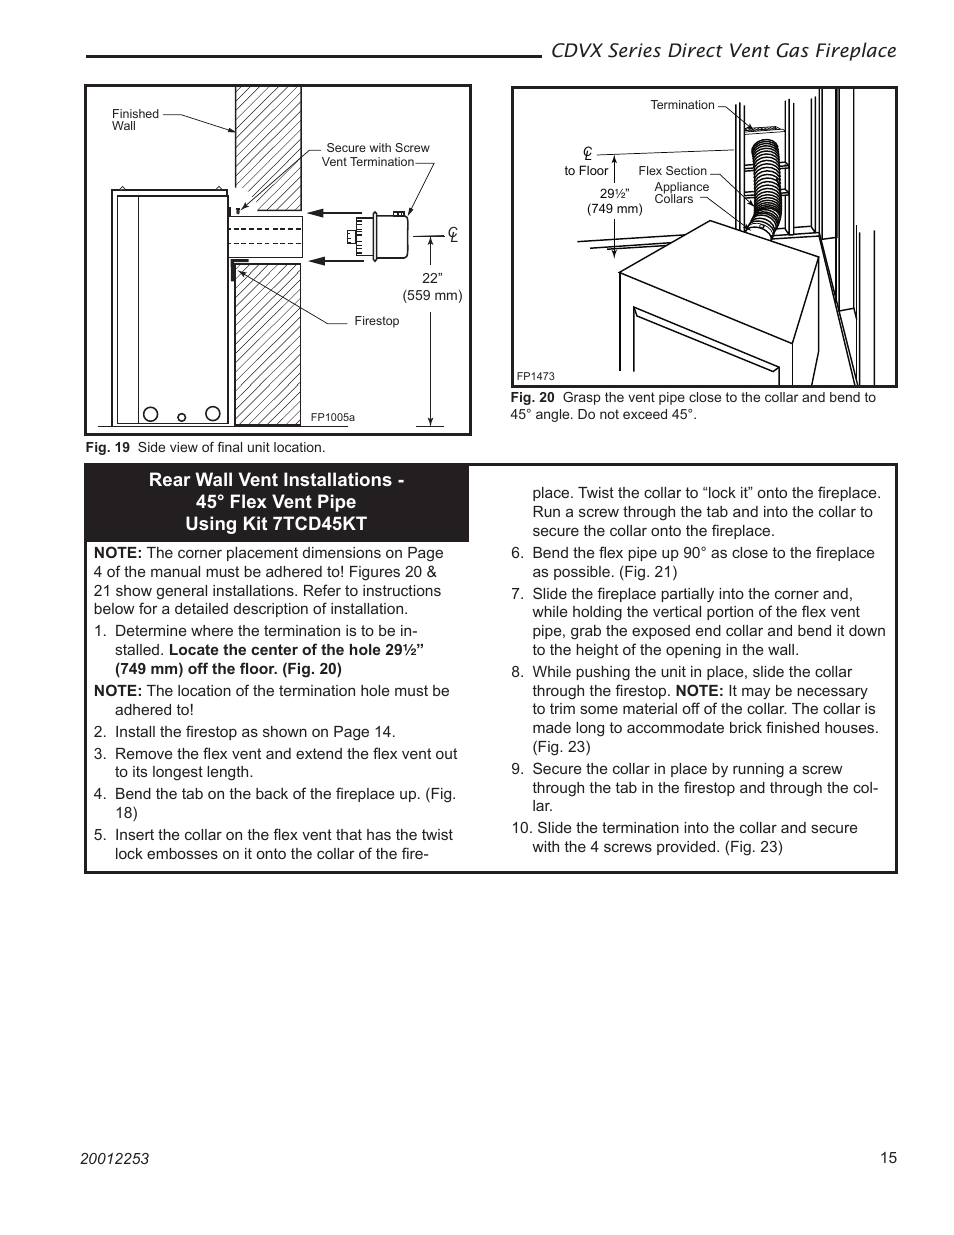 Direct Vent Gas Fireplace Wiring Diagram : 40 Wiring